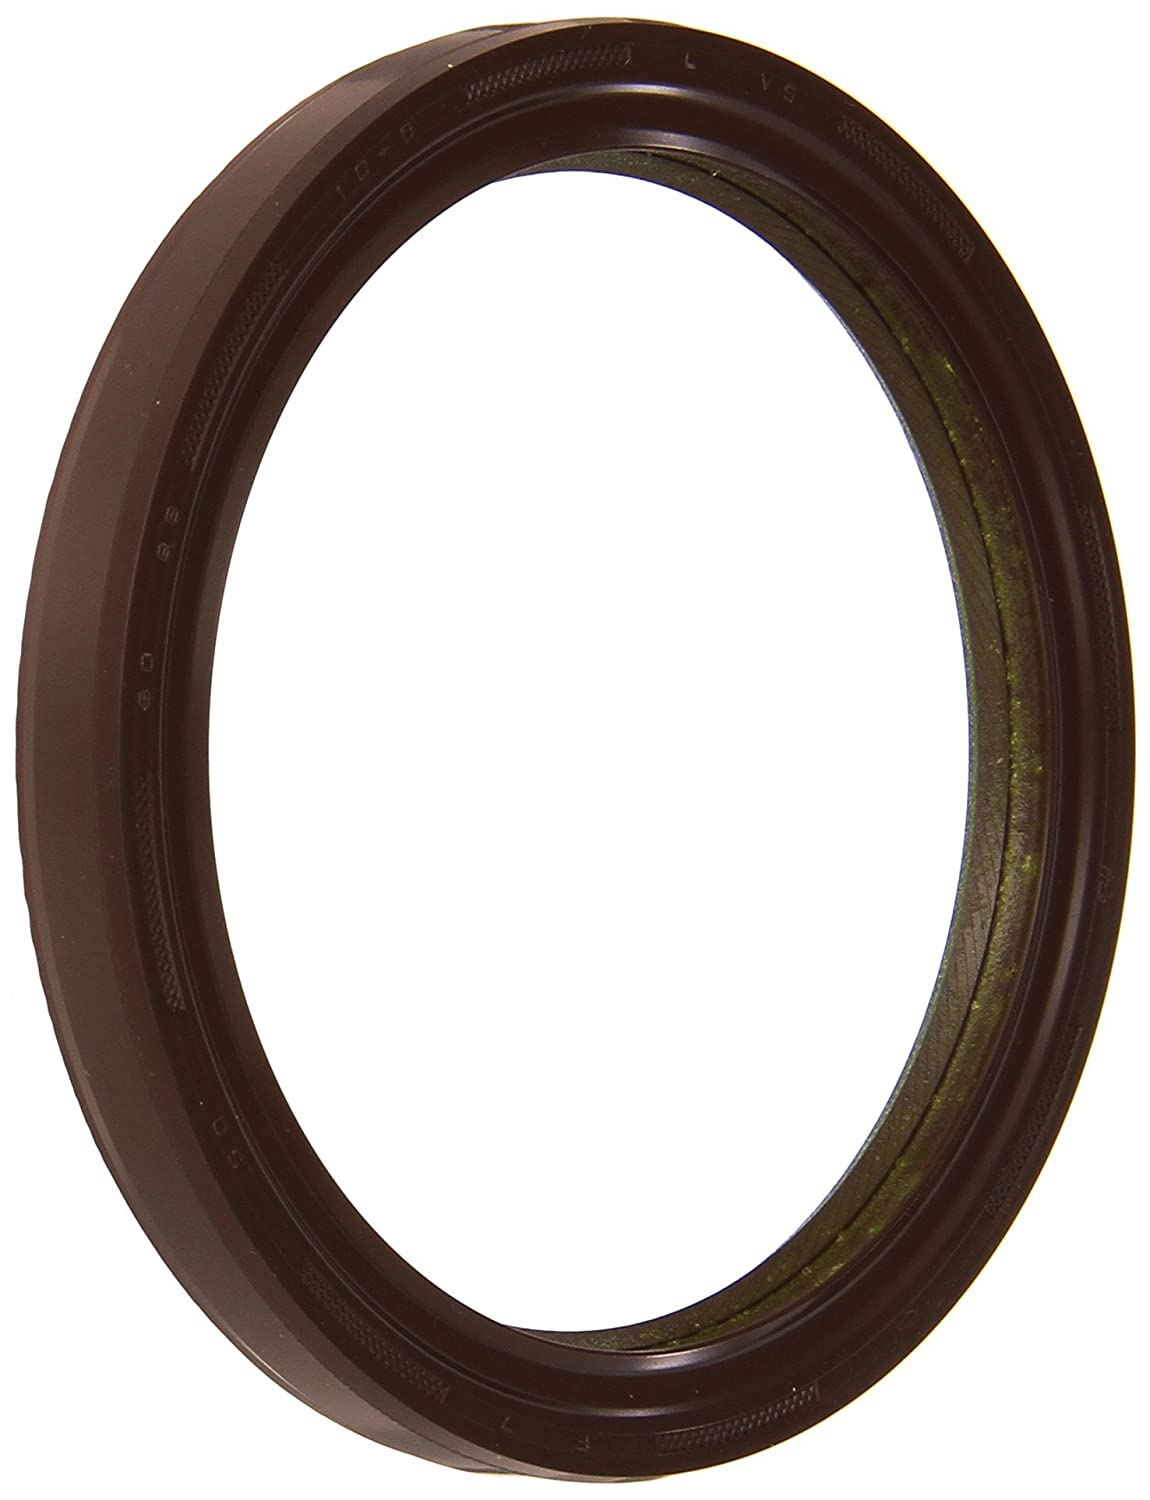 Genuine Honda 91214-RNB-A01 Crankshaft Oil Seal